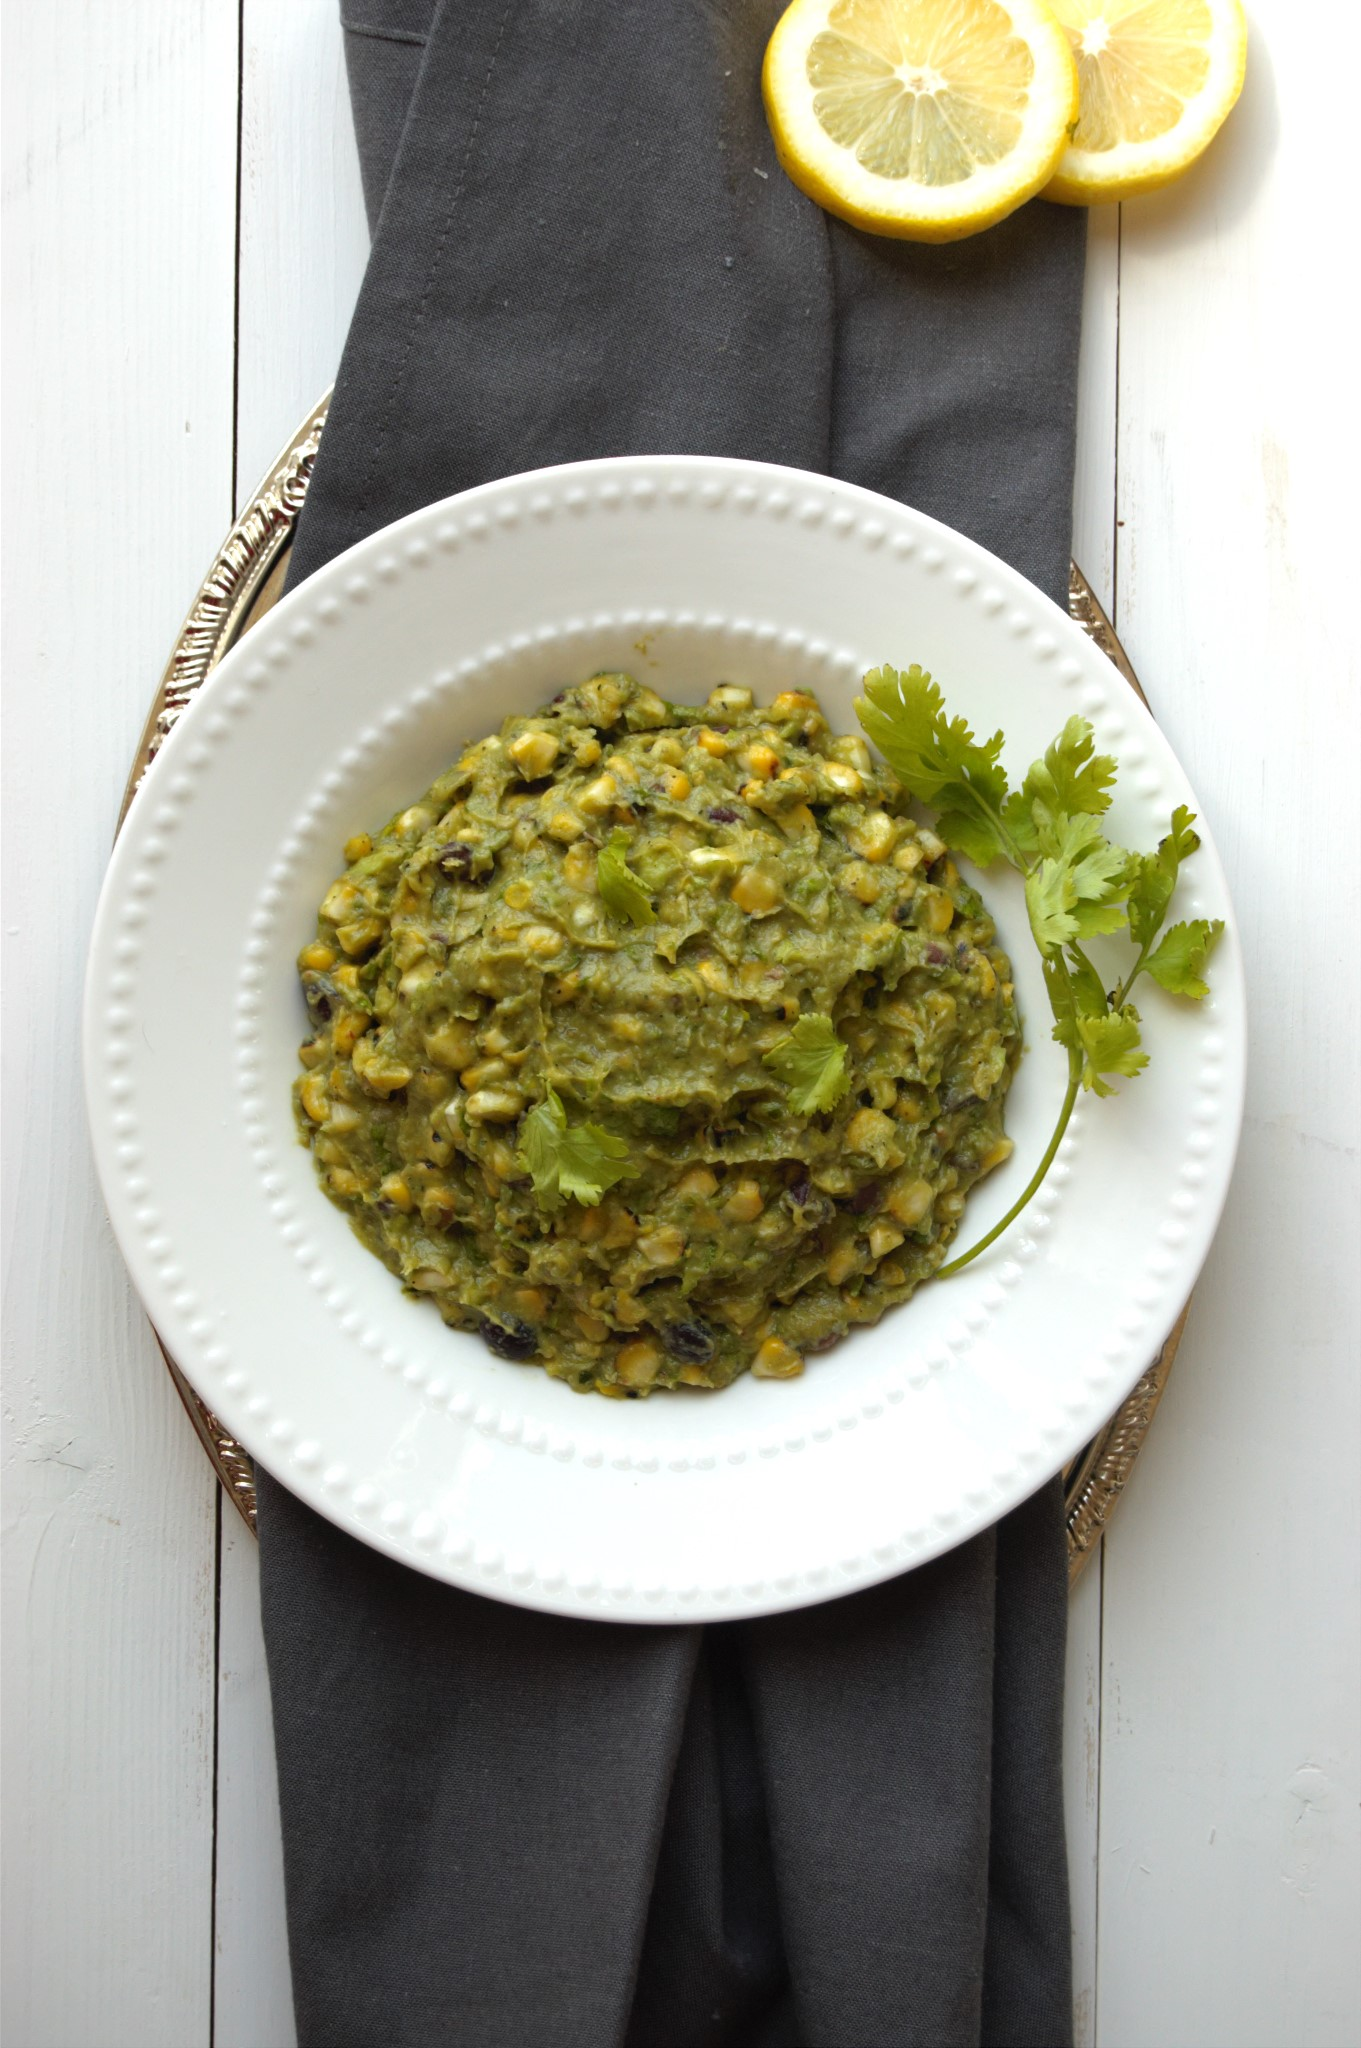 ... for 2013 04 09 Spicy Avocado Dip With Roasted Corn And Black Beans